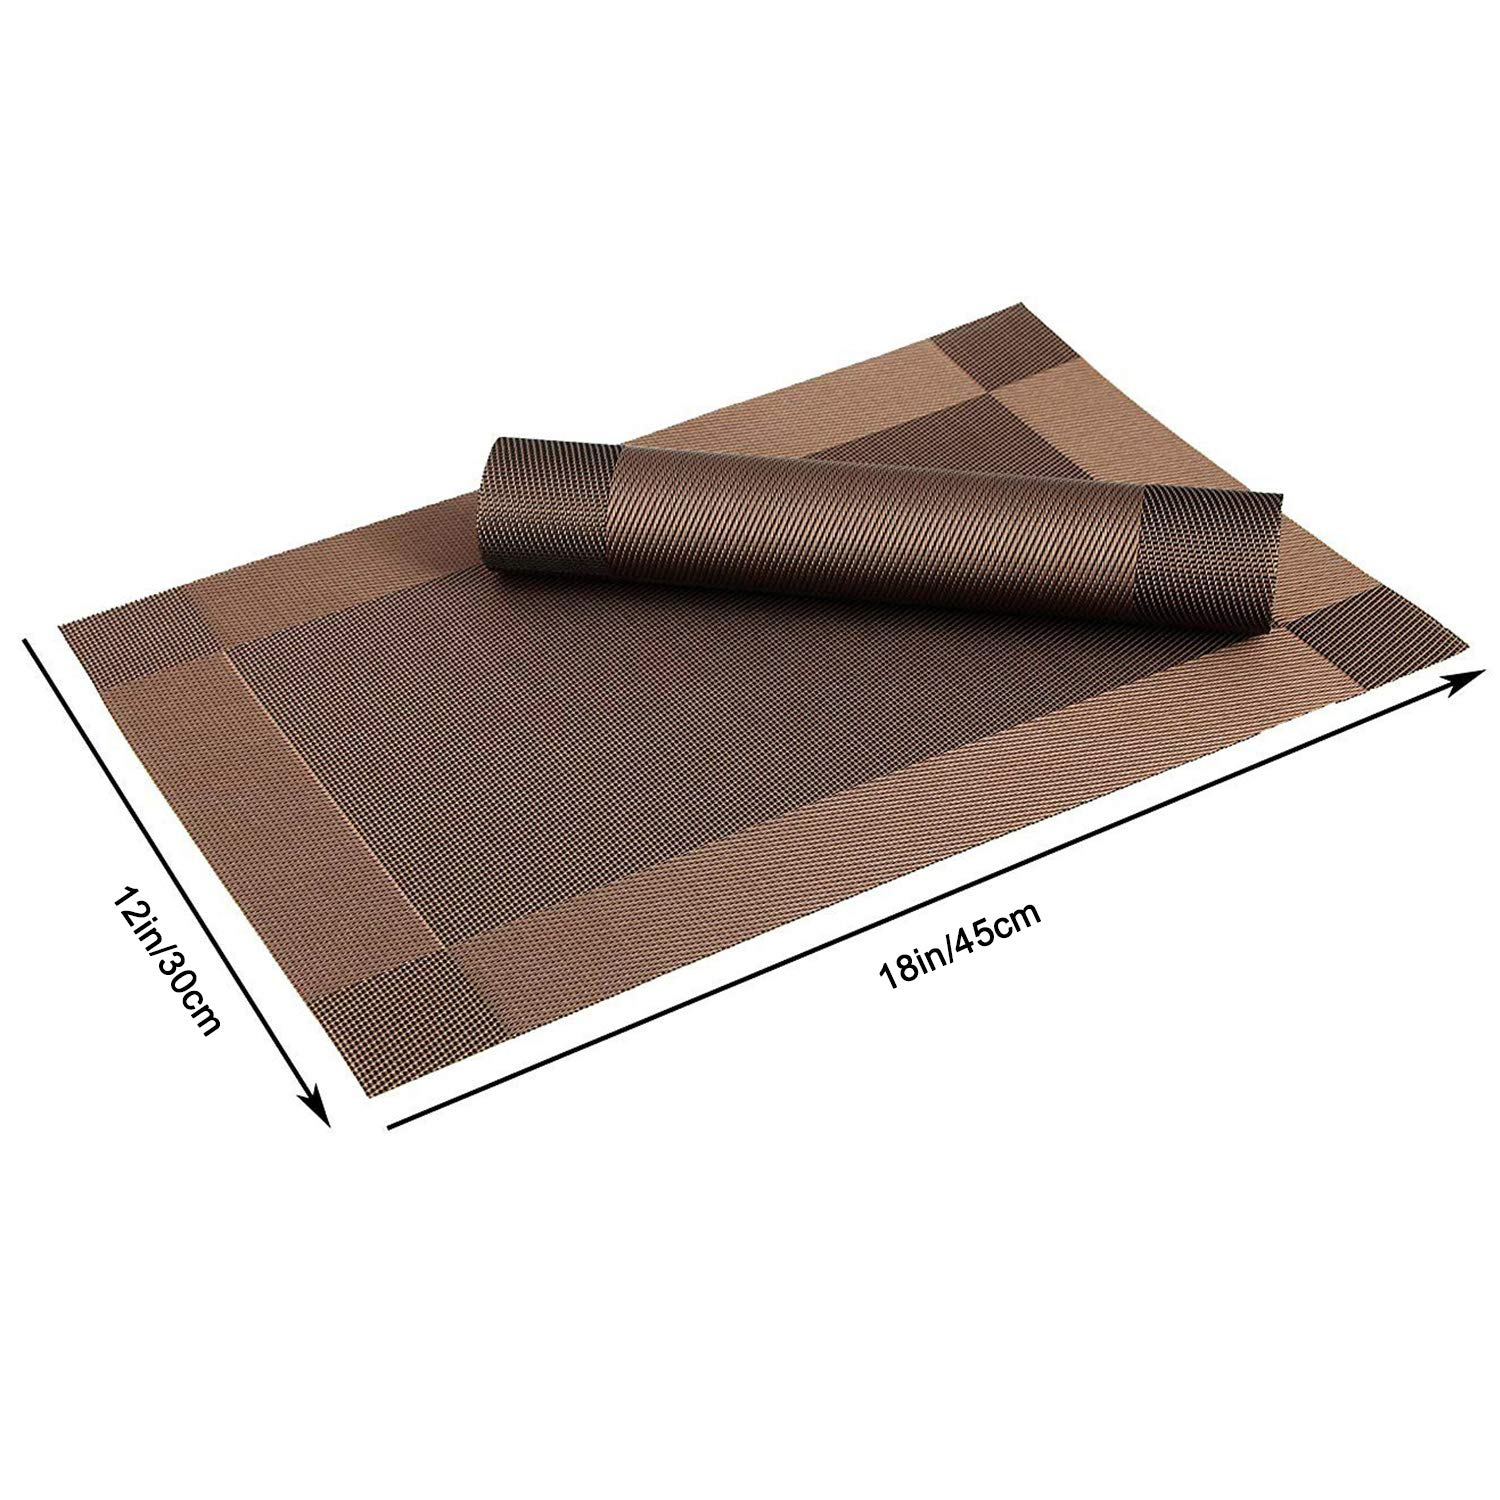 Gold YumSur Placemats Set of 6 for Dining Table Washable PVC Woven Vinyl Placemat Non-Slip Heat Resistant Kitchen Table Mats Easy to Clean